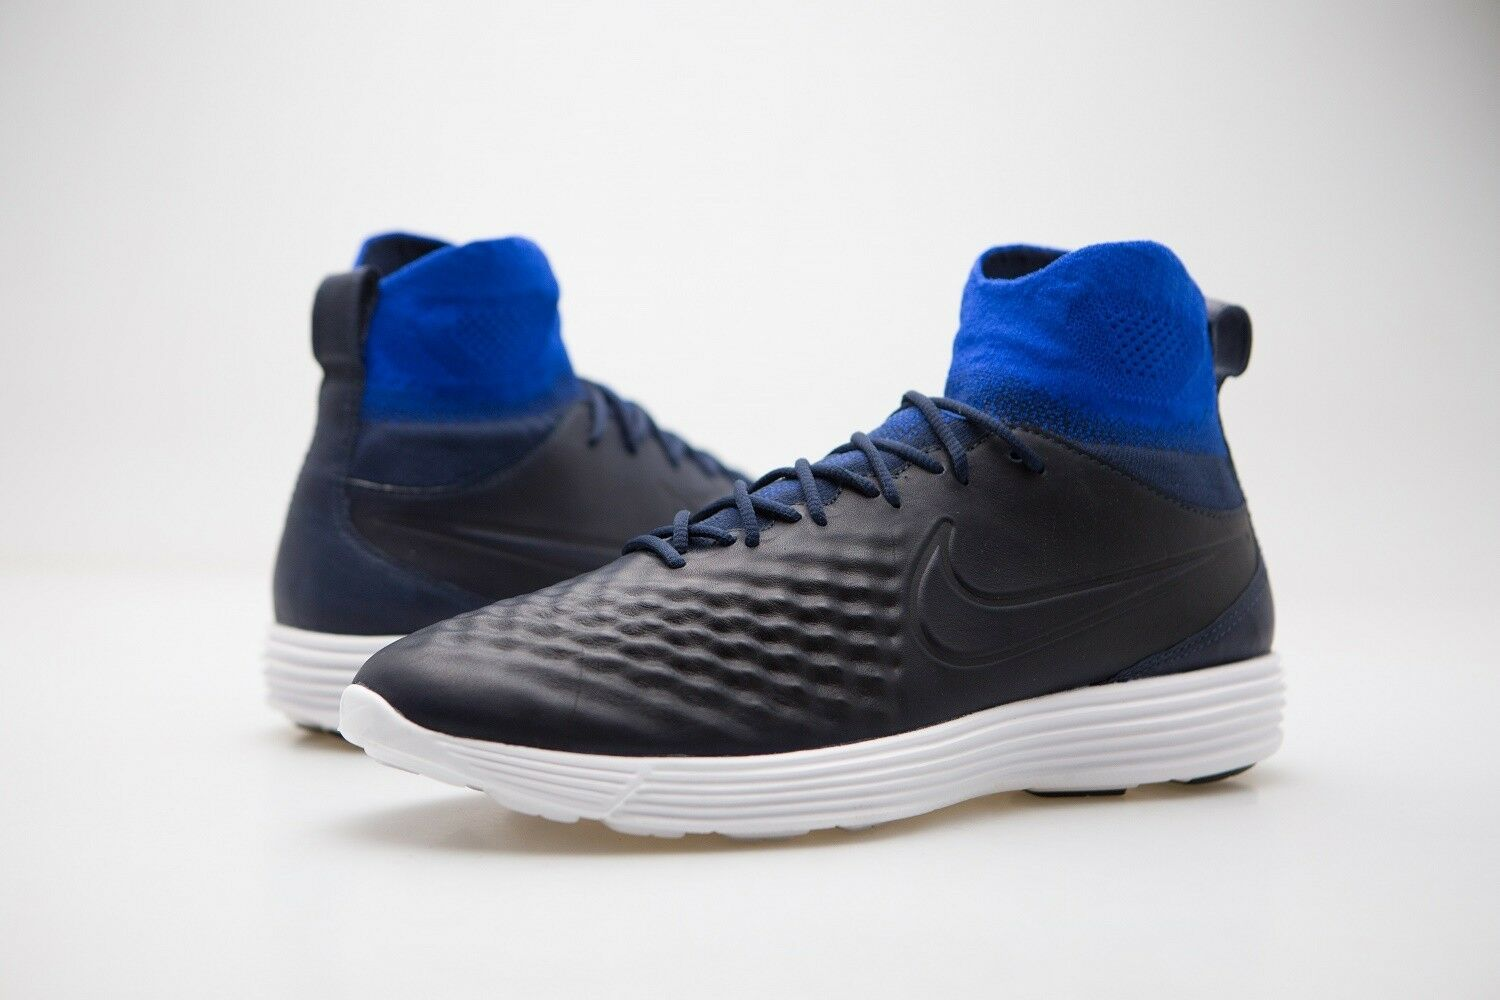 852614-400 Nike Men Lunar Magista Ii Flyknit College Navy Racer Blue